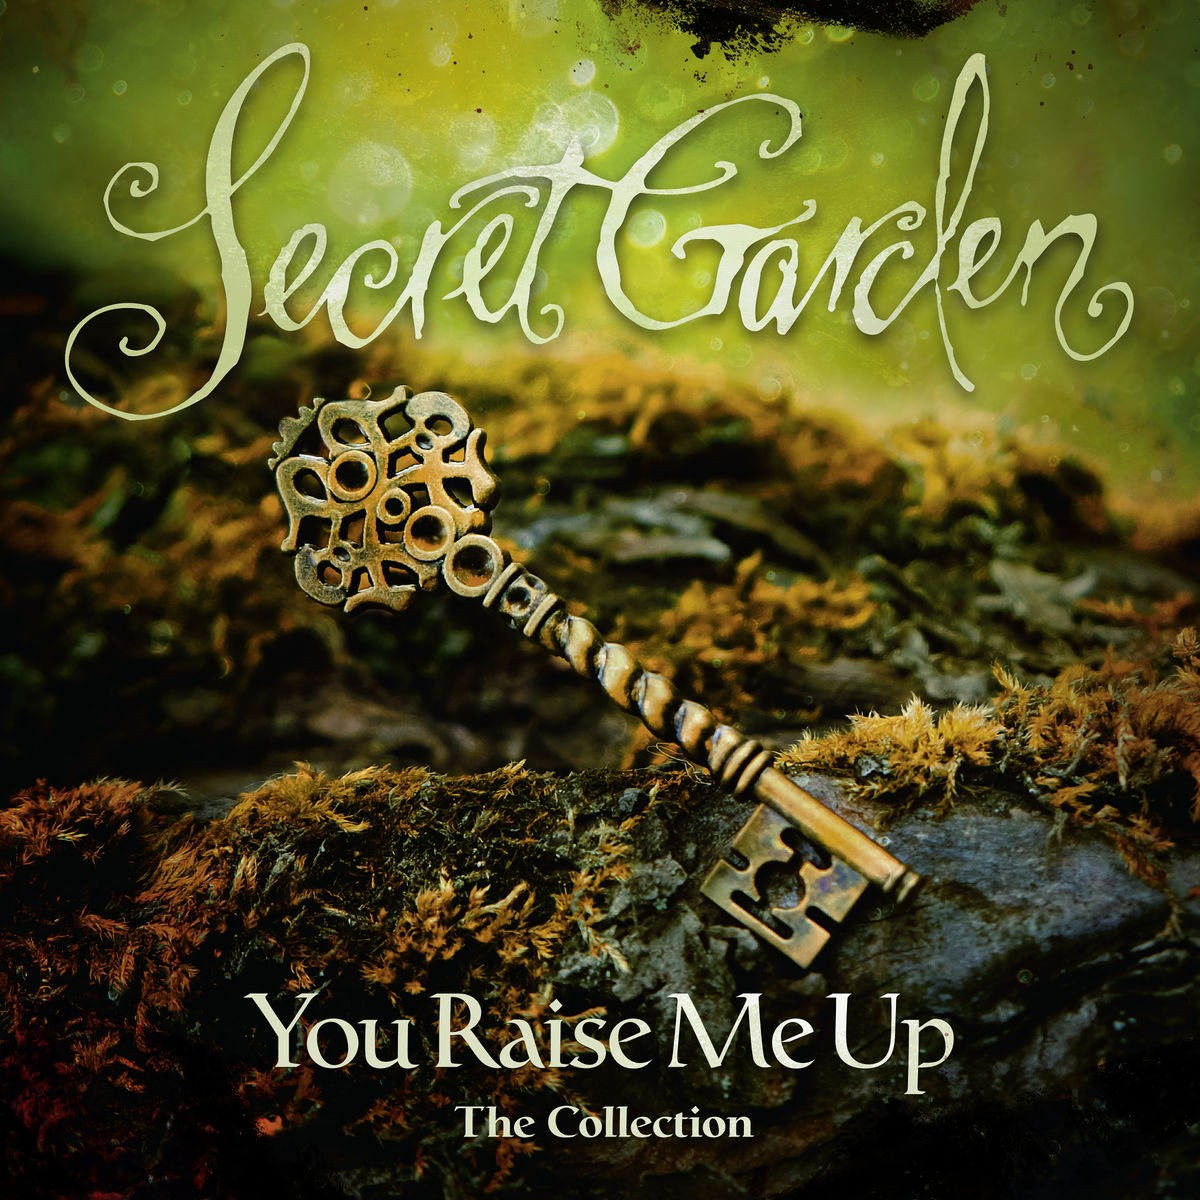 Secret Garden - You Raise Me Up - The Collection CD - 06025 6748272